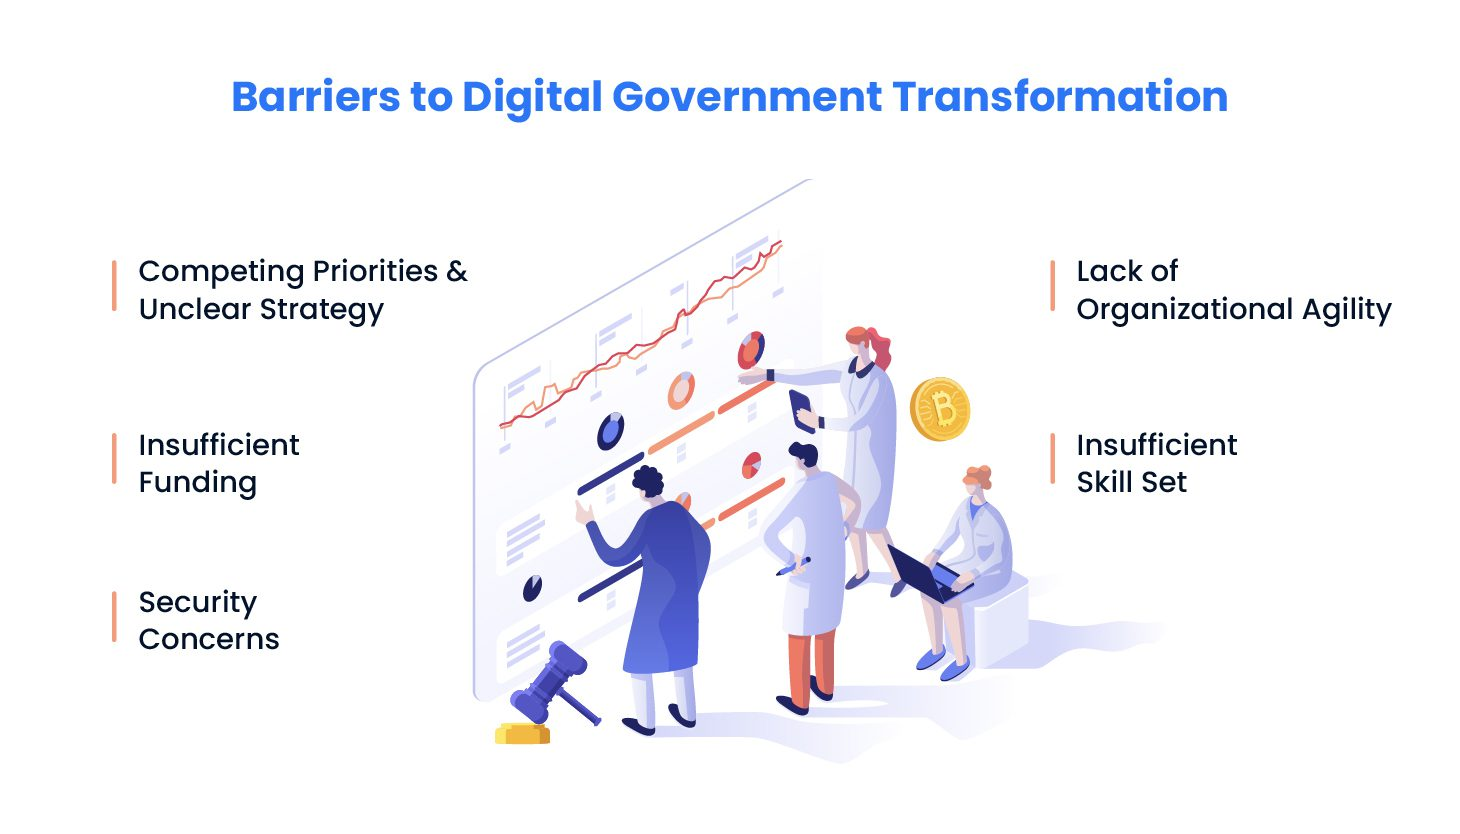 Barriers to Digital Government Transformation